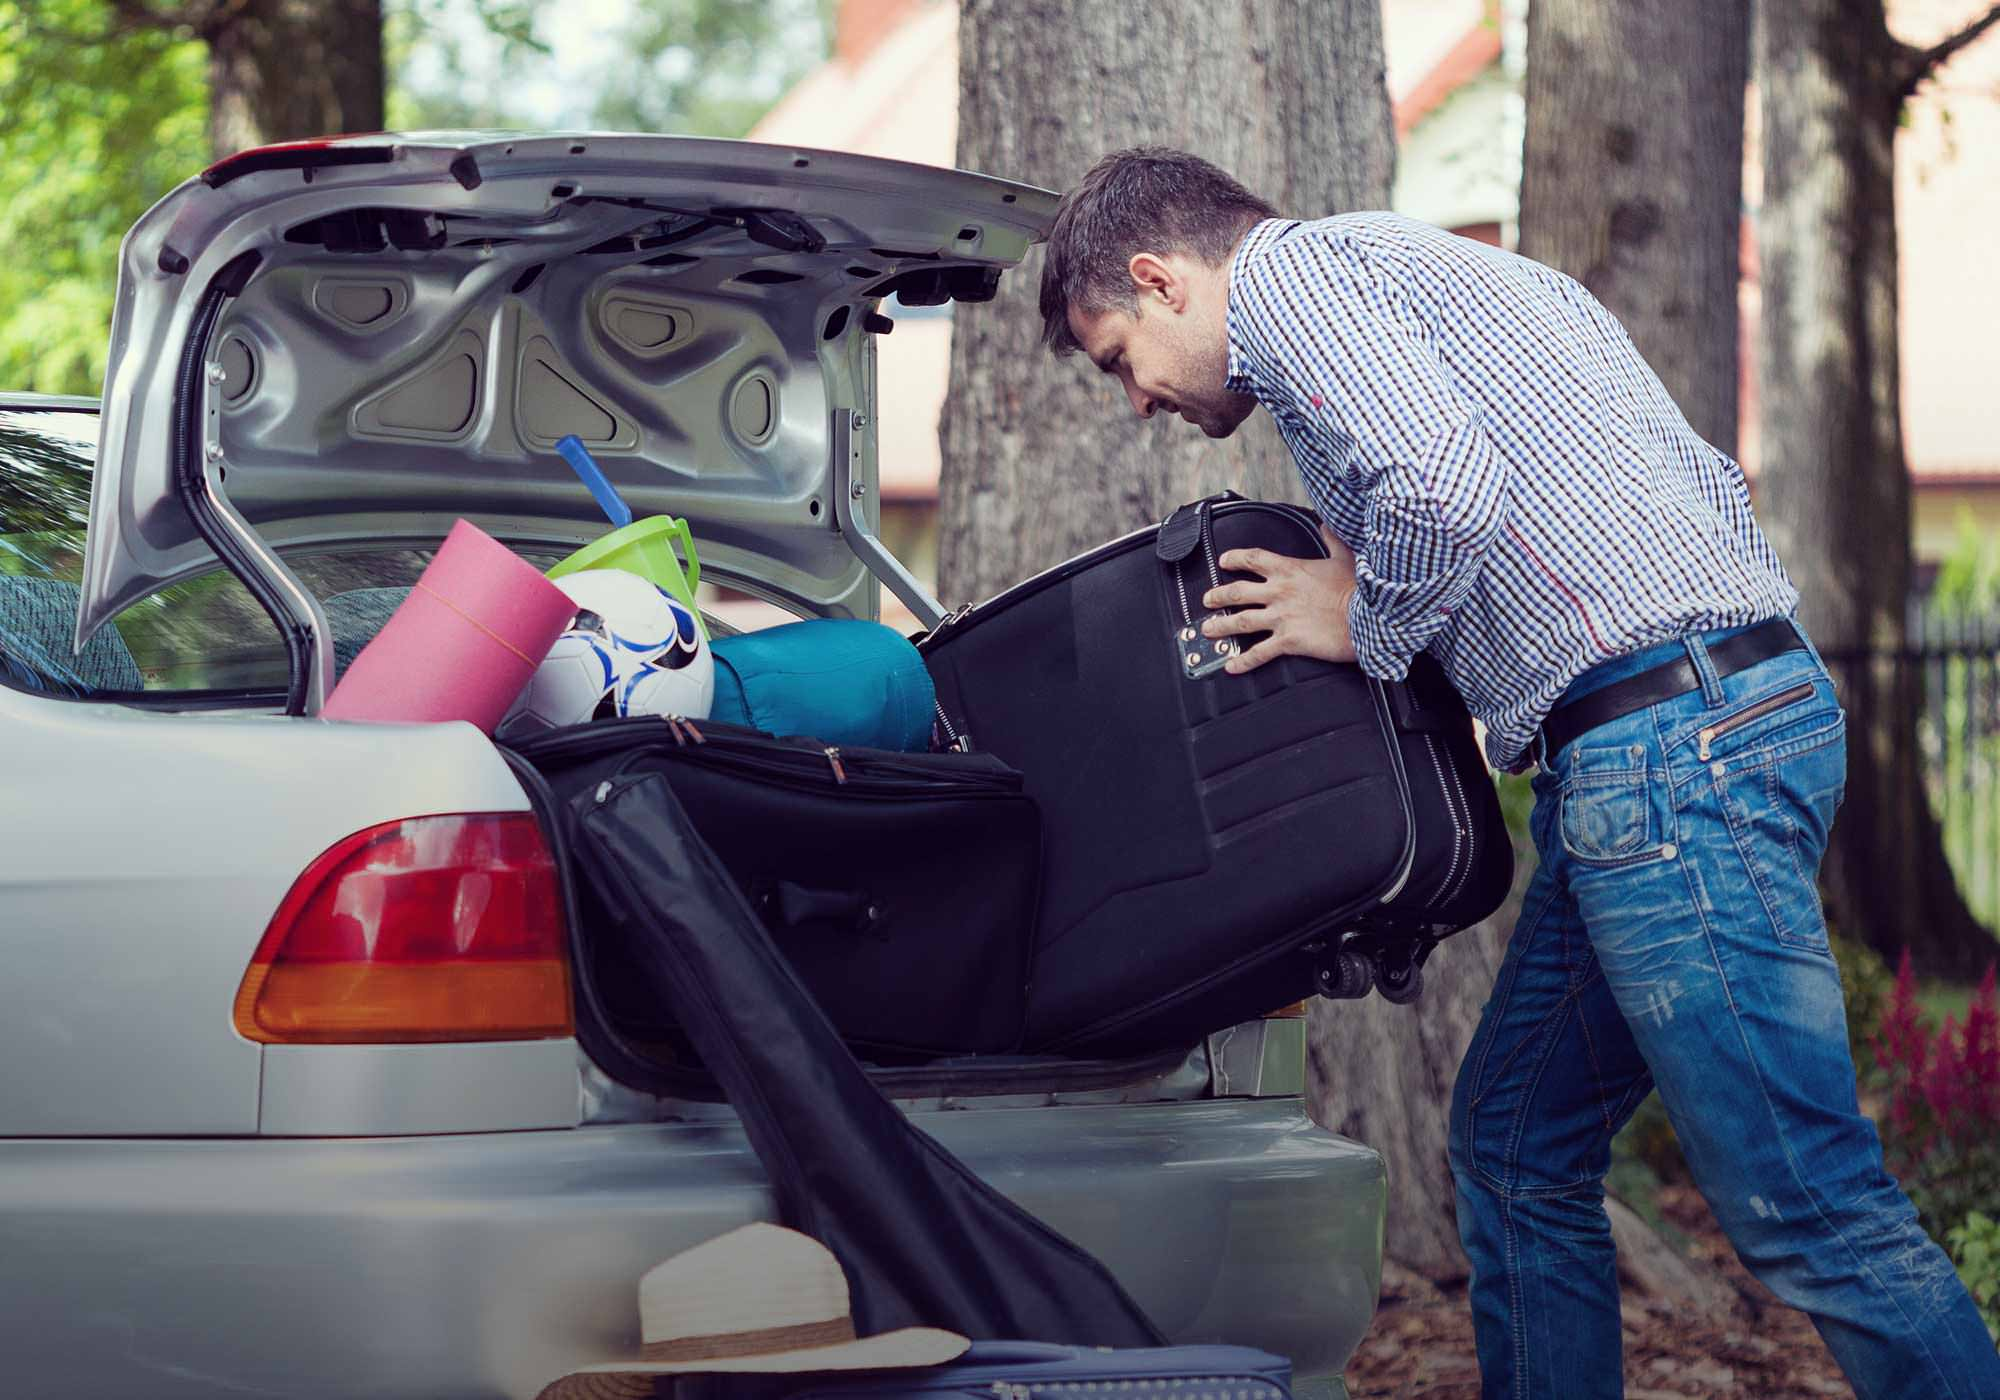 A Road Trip Alone: Be Prepared With These 10 Tips